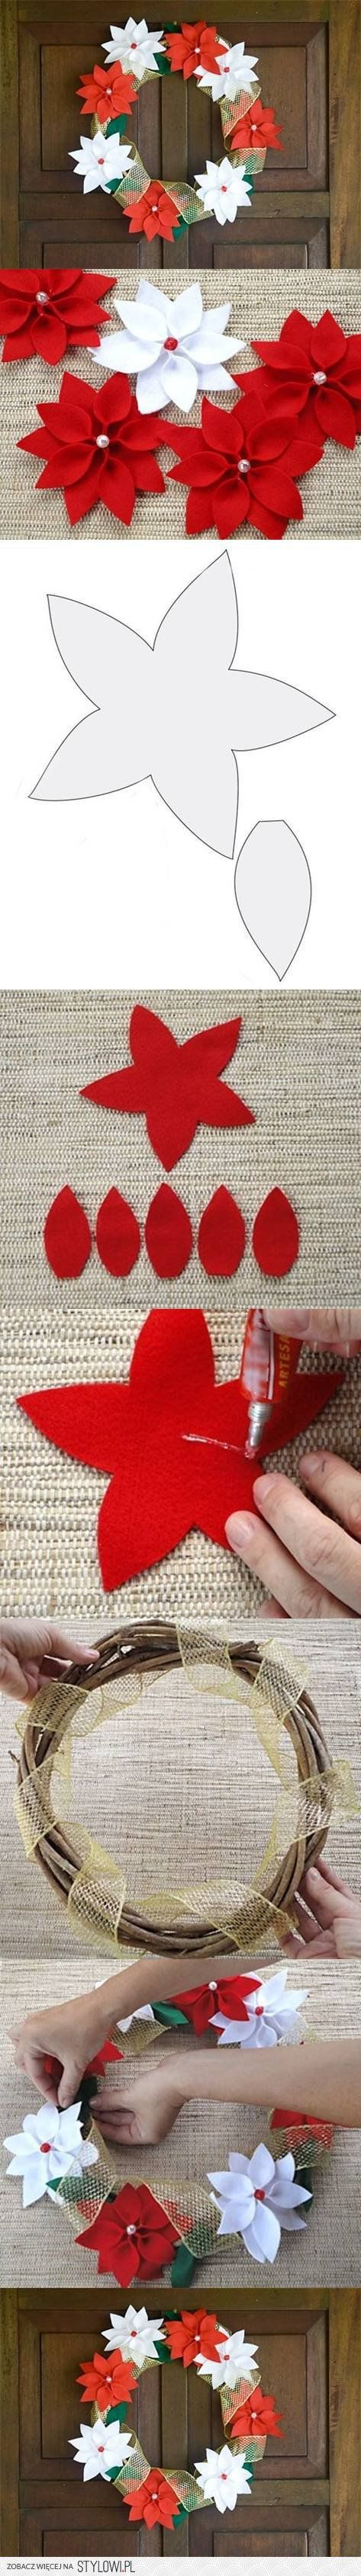 DIY Felt Christmas Wreath DIY Projects | UsefulDIY.com na Stylowi.pl